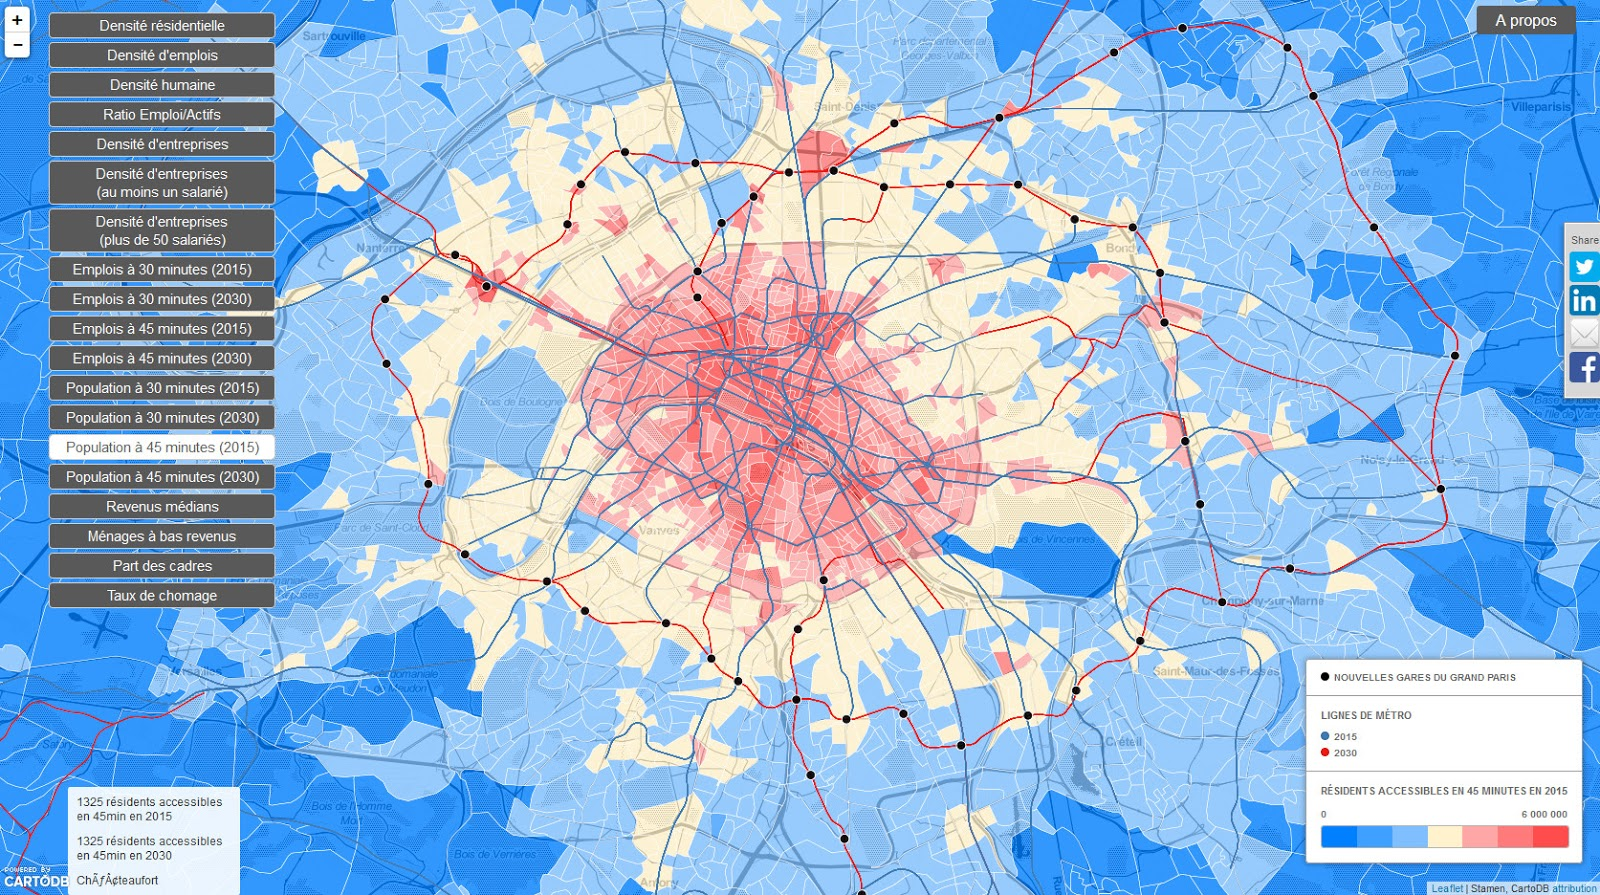 Density & accessibility of the Grand Paris (2015 - 2030)